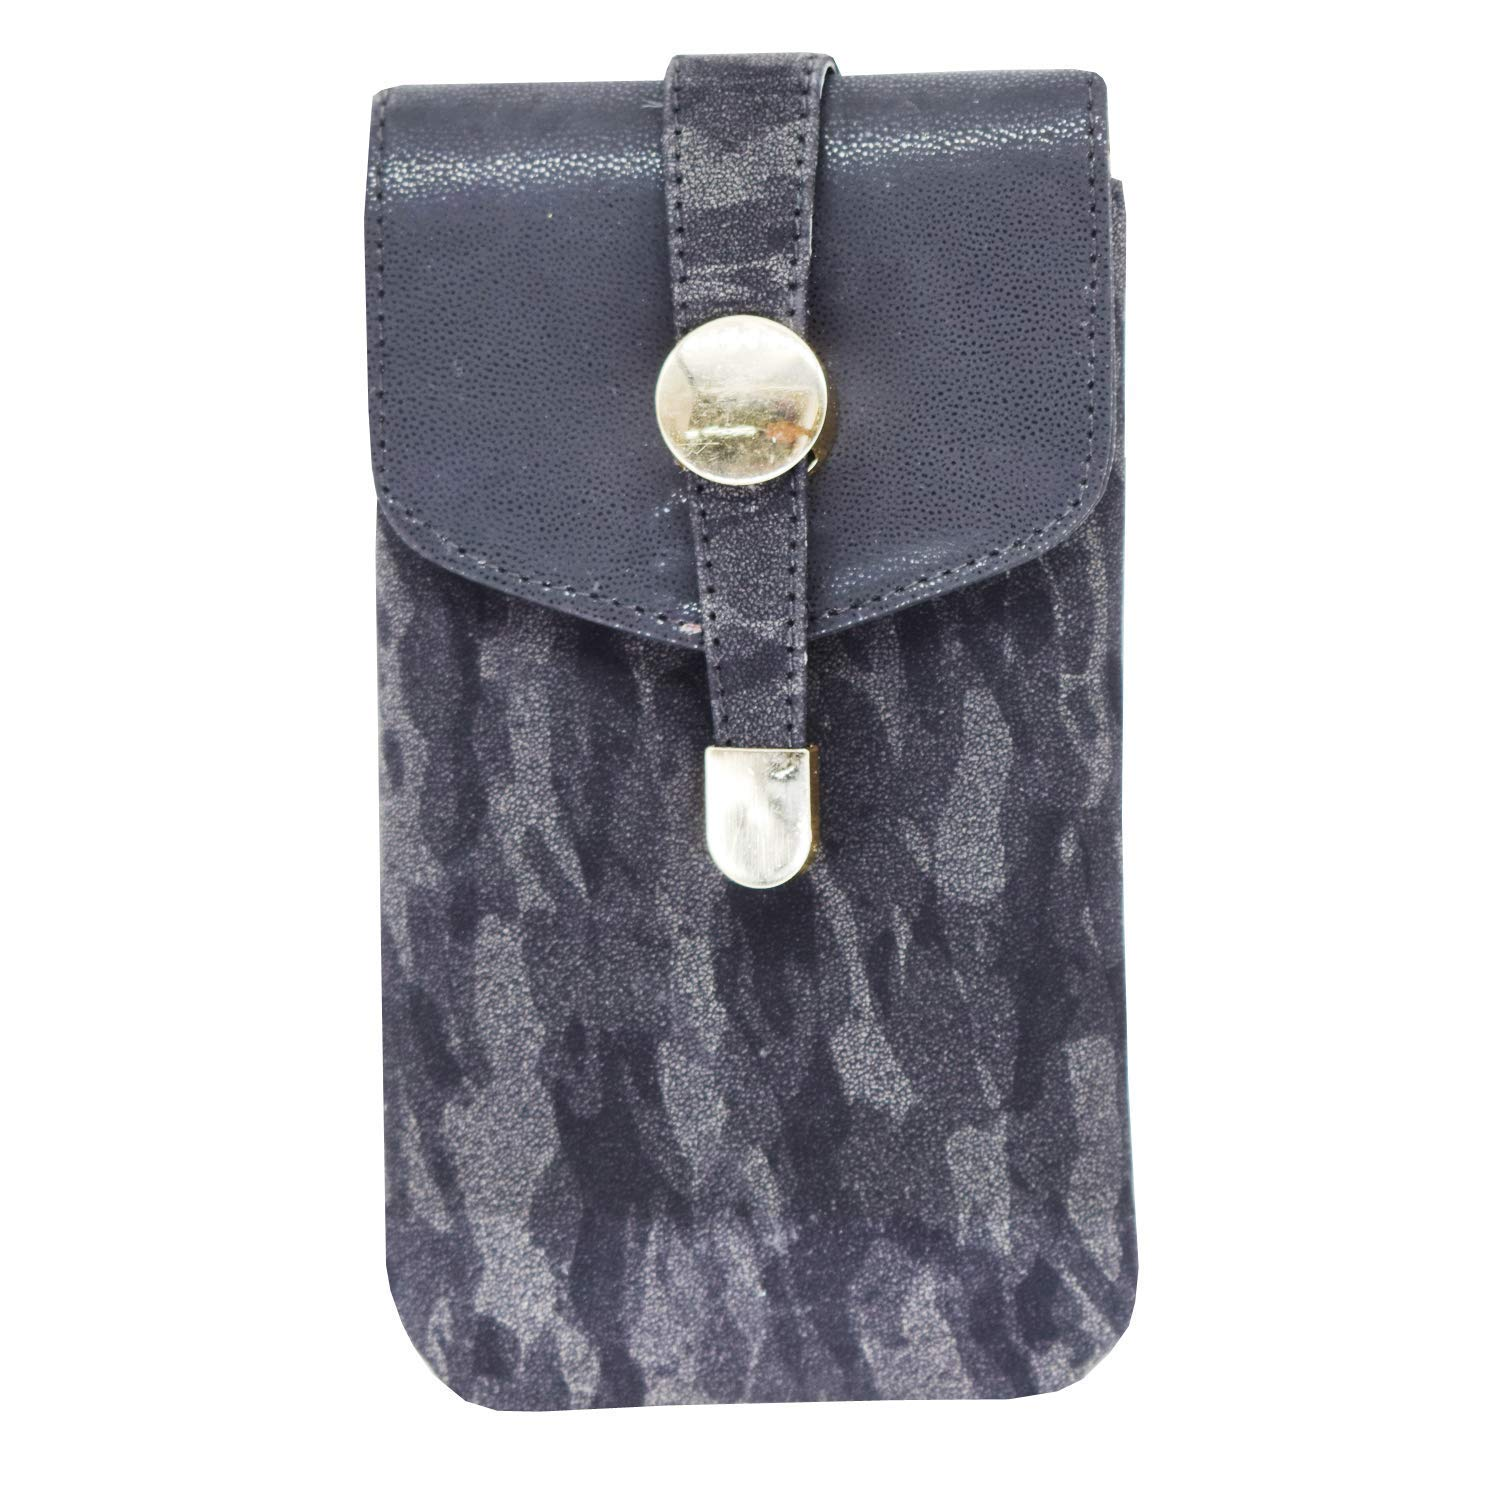 Leather Mobile Pouch with Waist Clip (Black) - Bagaholics Gift